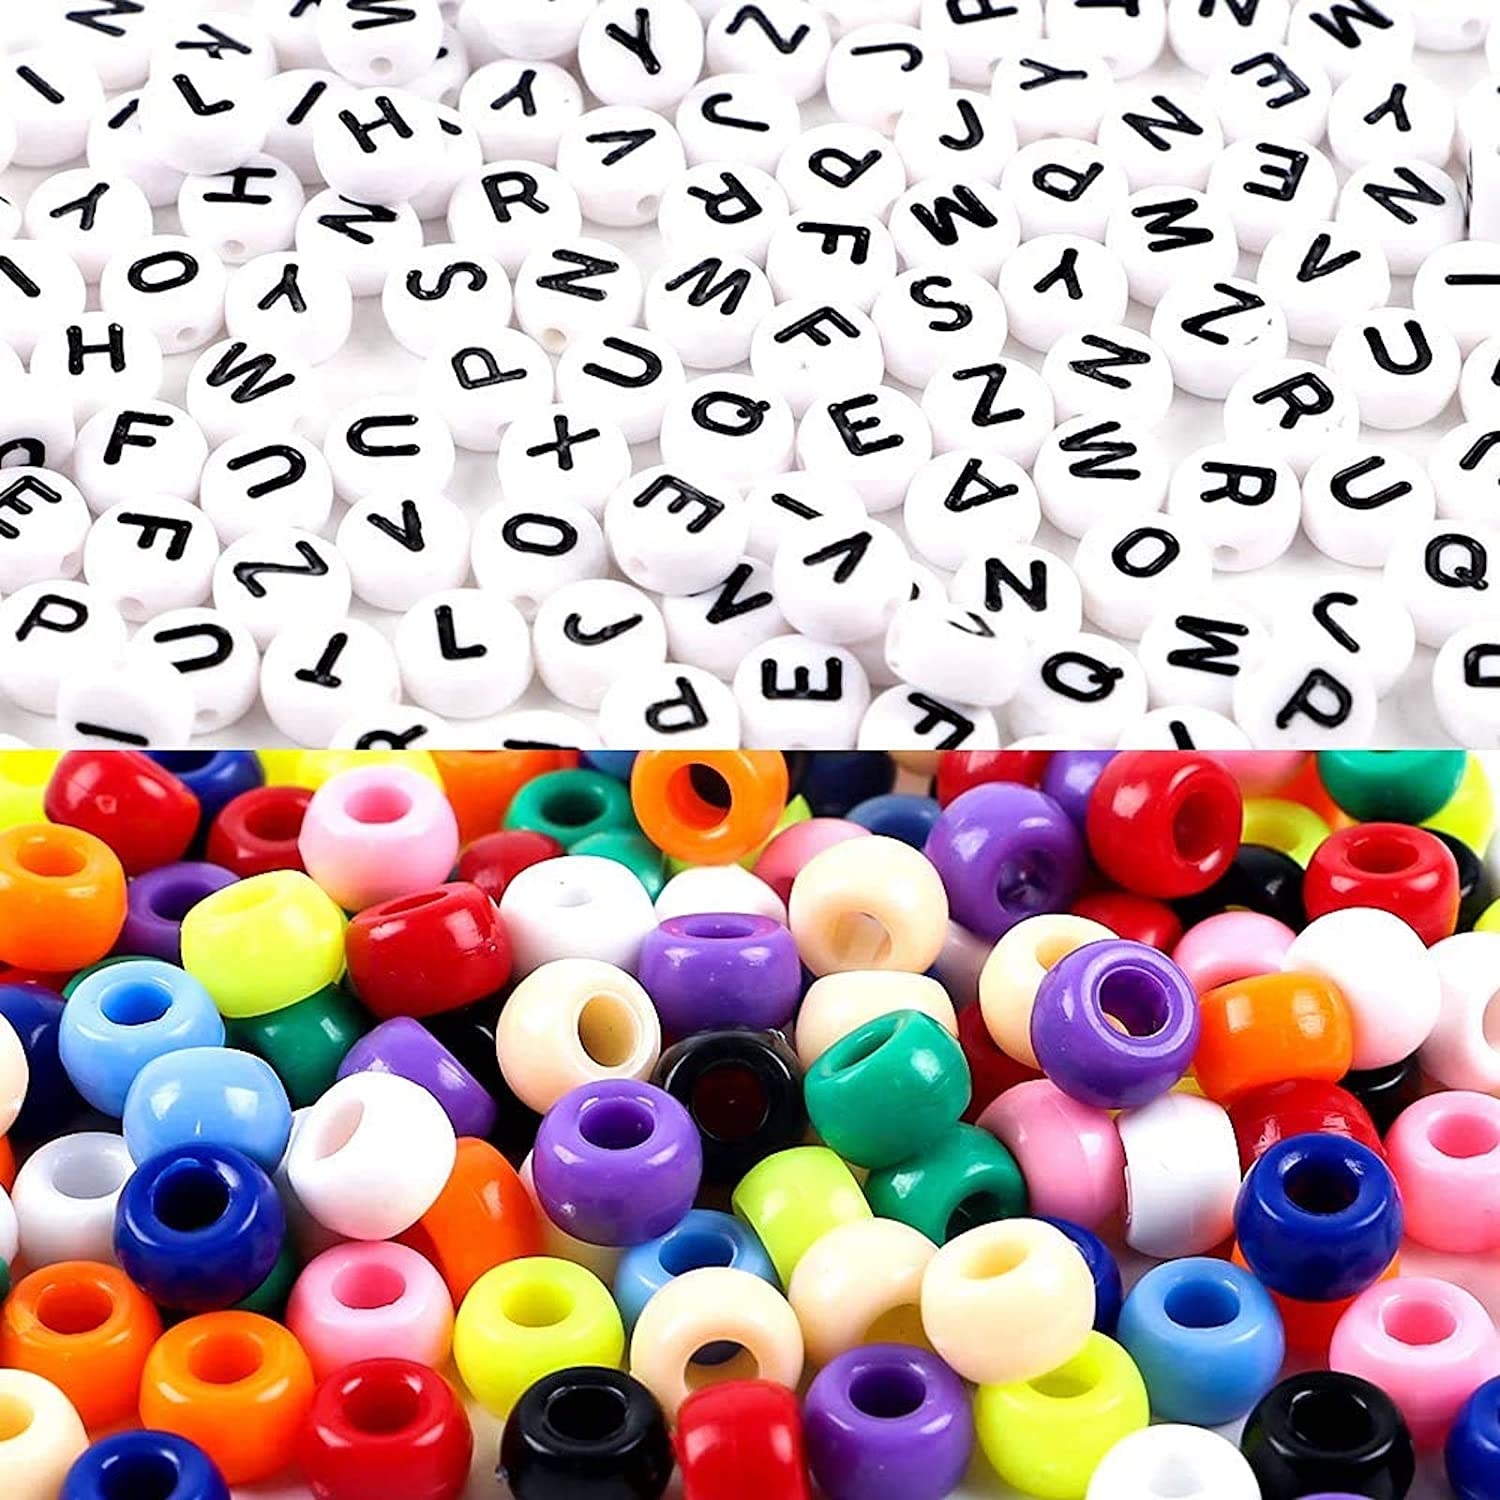 White Color Numeral Bead Resin Acrylic Perforated Beads DIY Bracelet Accessories HD005-10